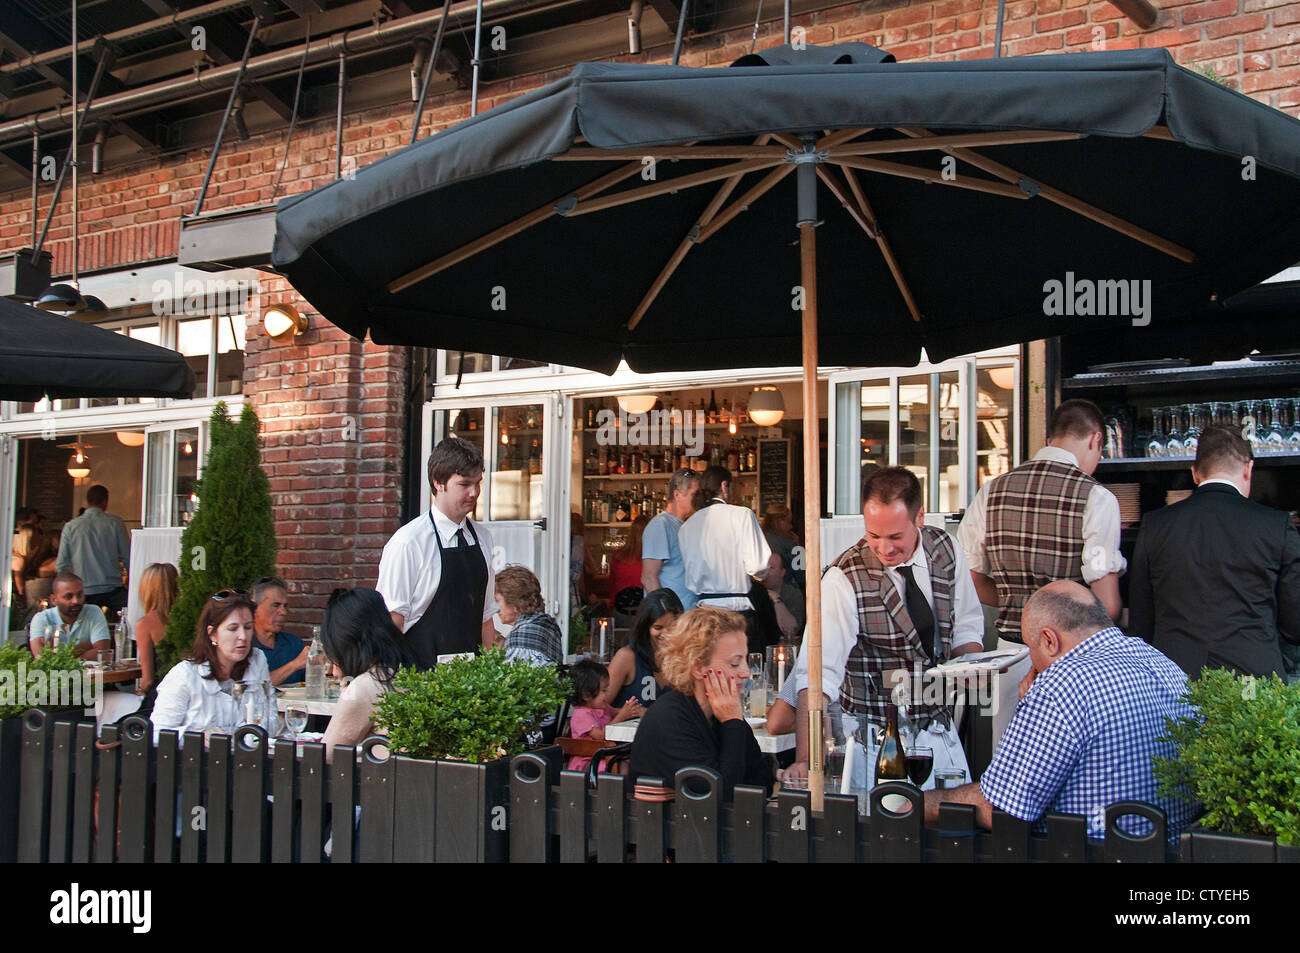 Meat Packing District Inspired Restaurant In Melbourne ·  Http://c7.alamy.com/comp/CTYEH5/west